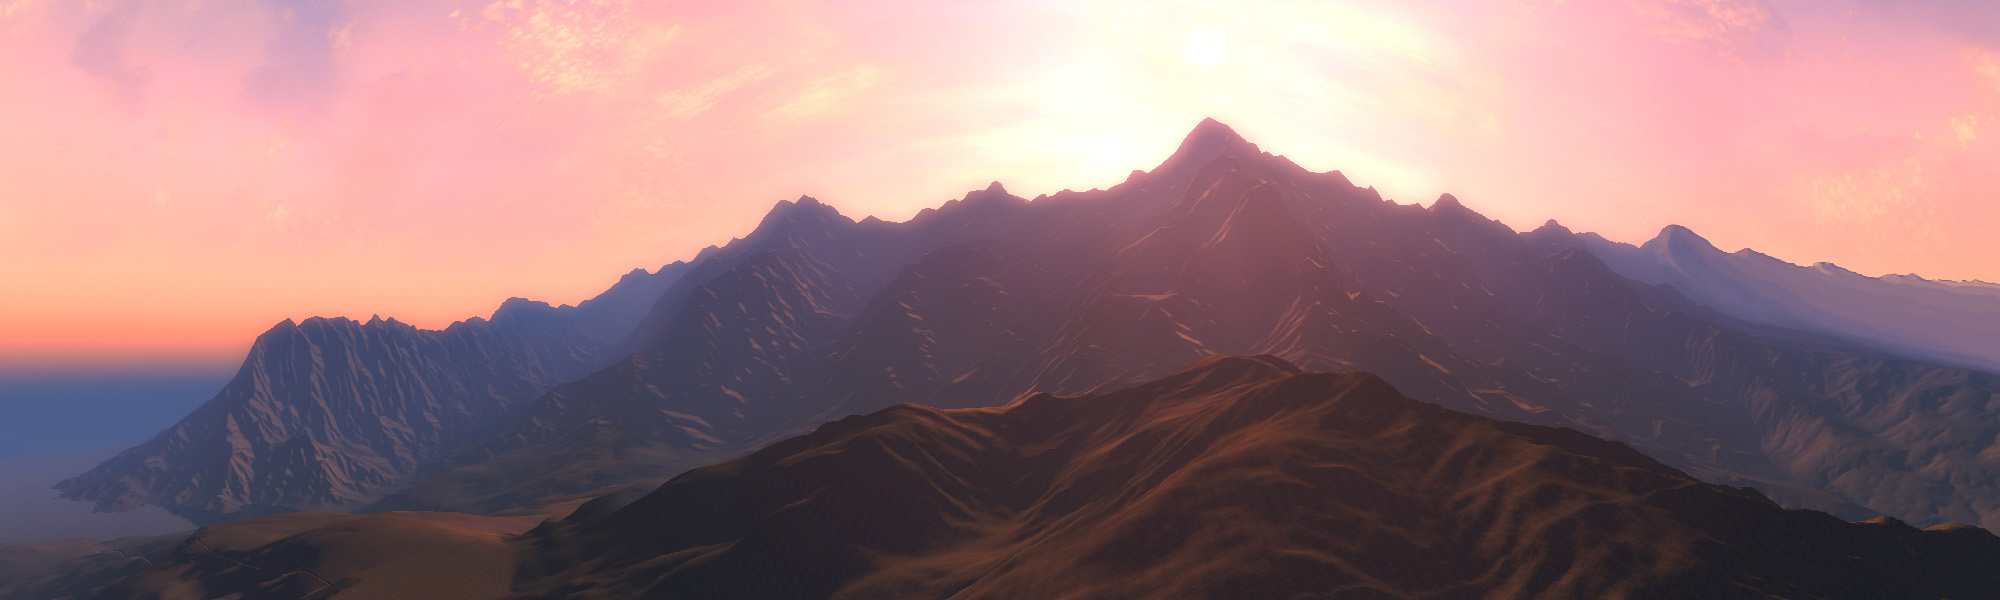 Ingame Panorama 1 image - Adventure Middle Earth mod for